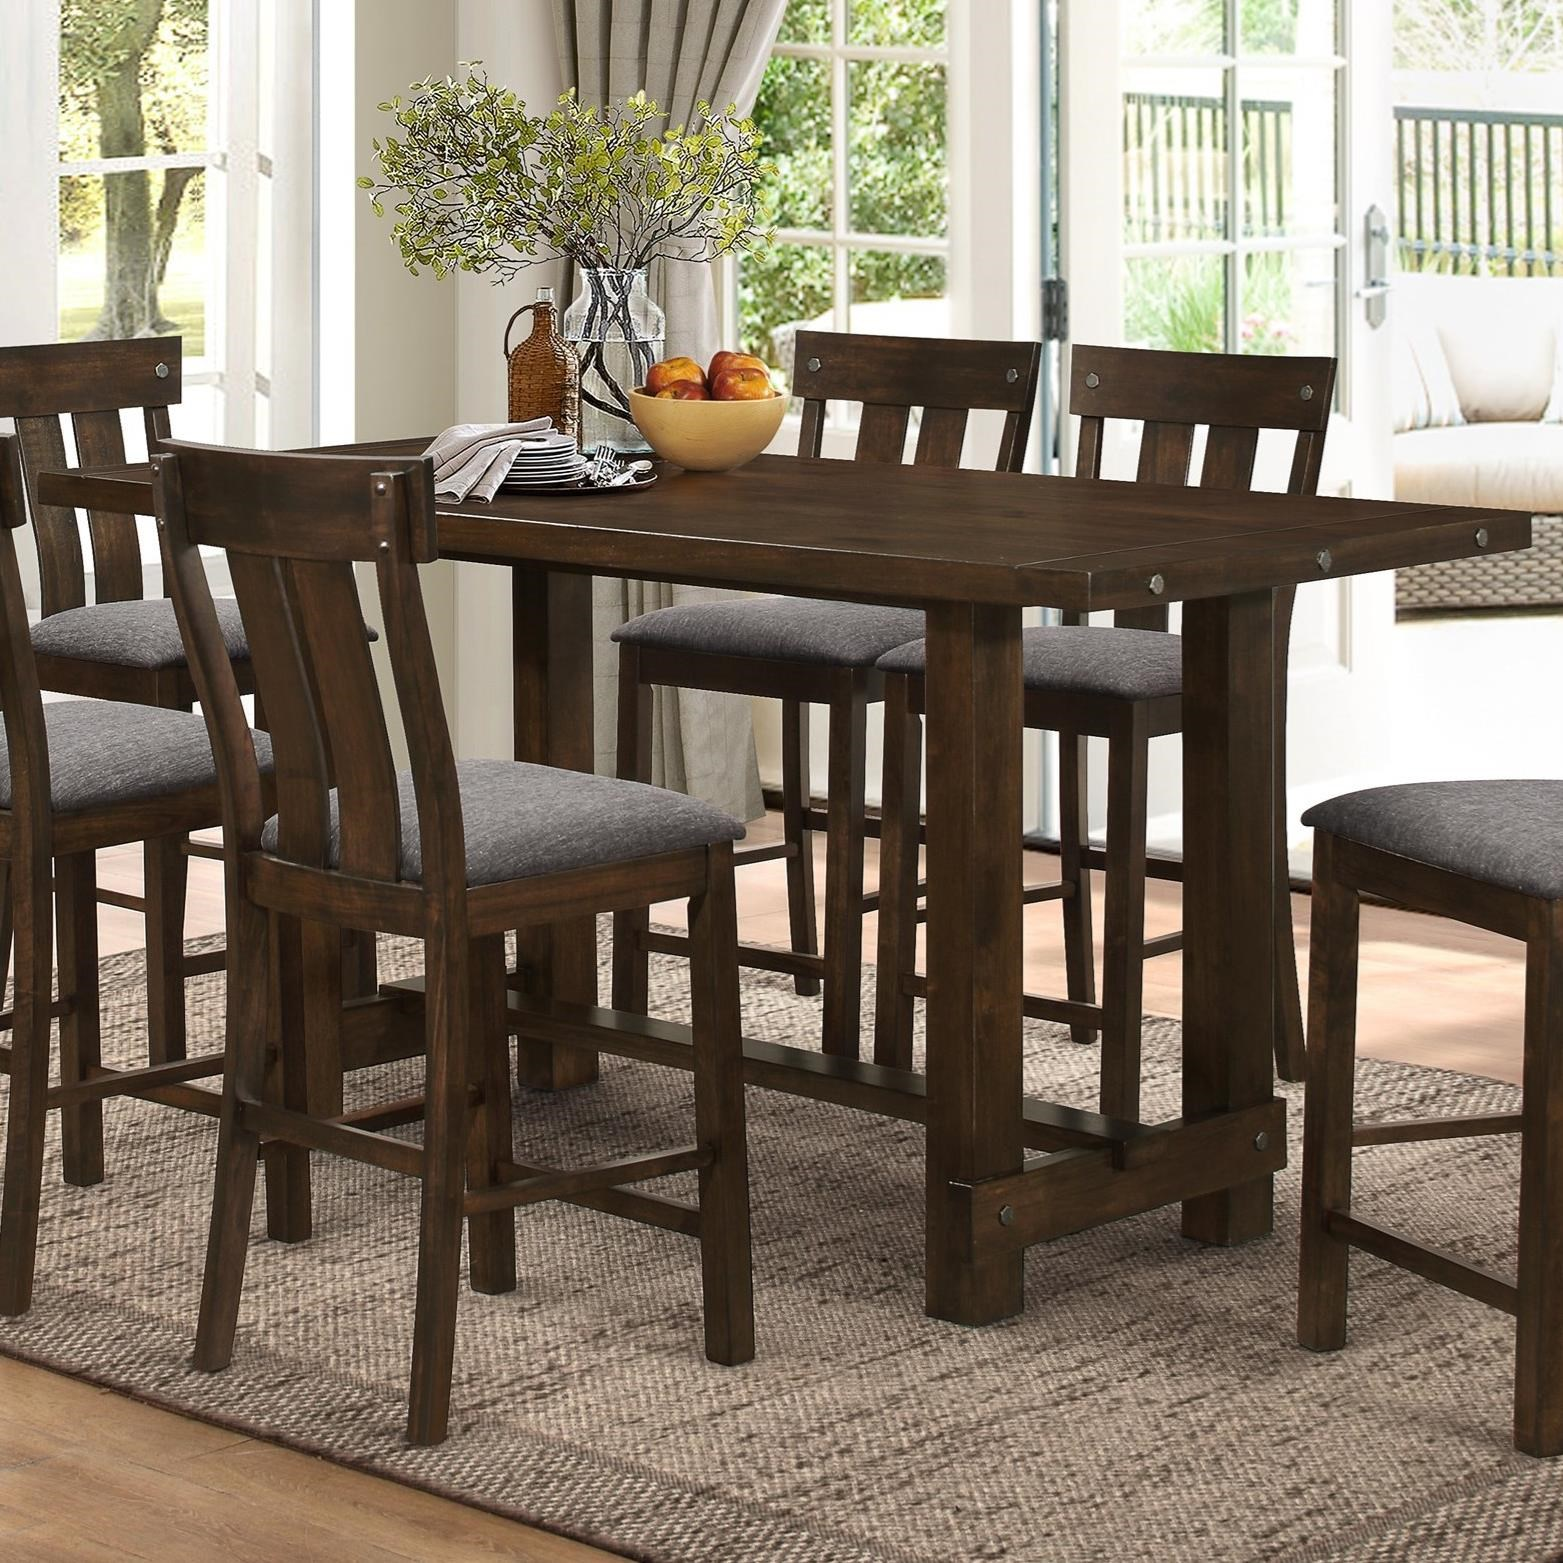 New Classic Frisco D2550 12 Trestle Counter Table With Metal Accents Del Sol Furniture Pub Table